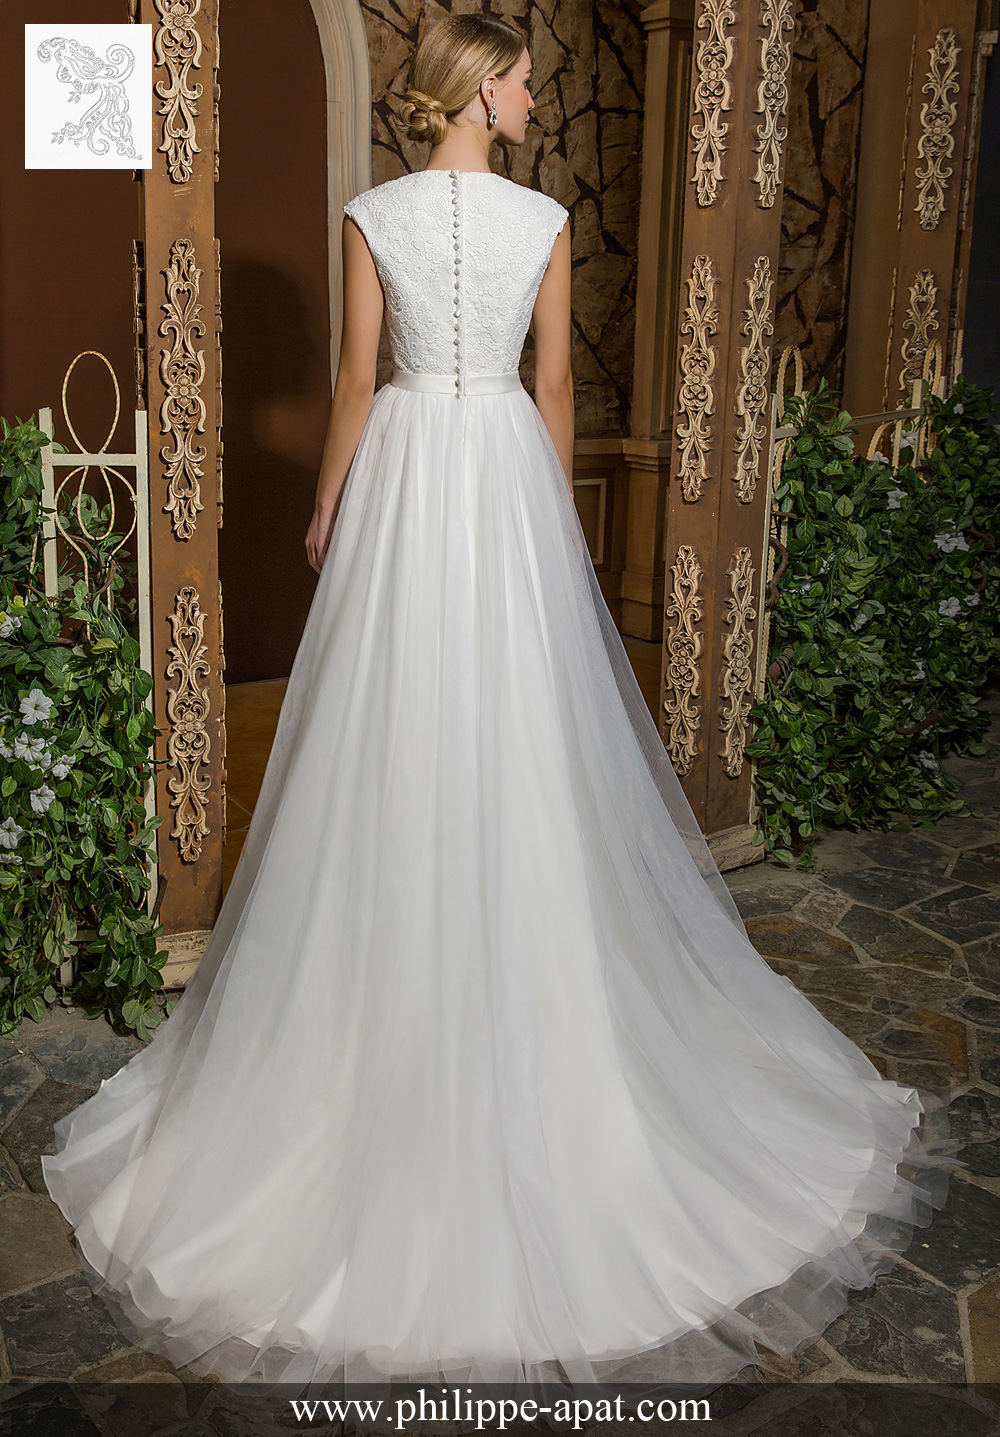 Robe de mariee bea 2017 mariage Philippe Apat